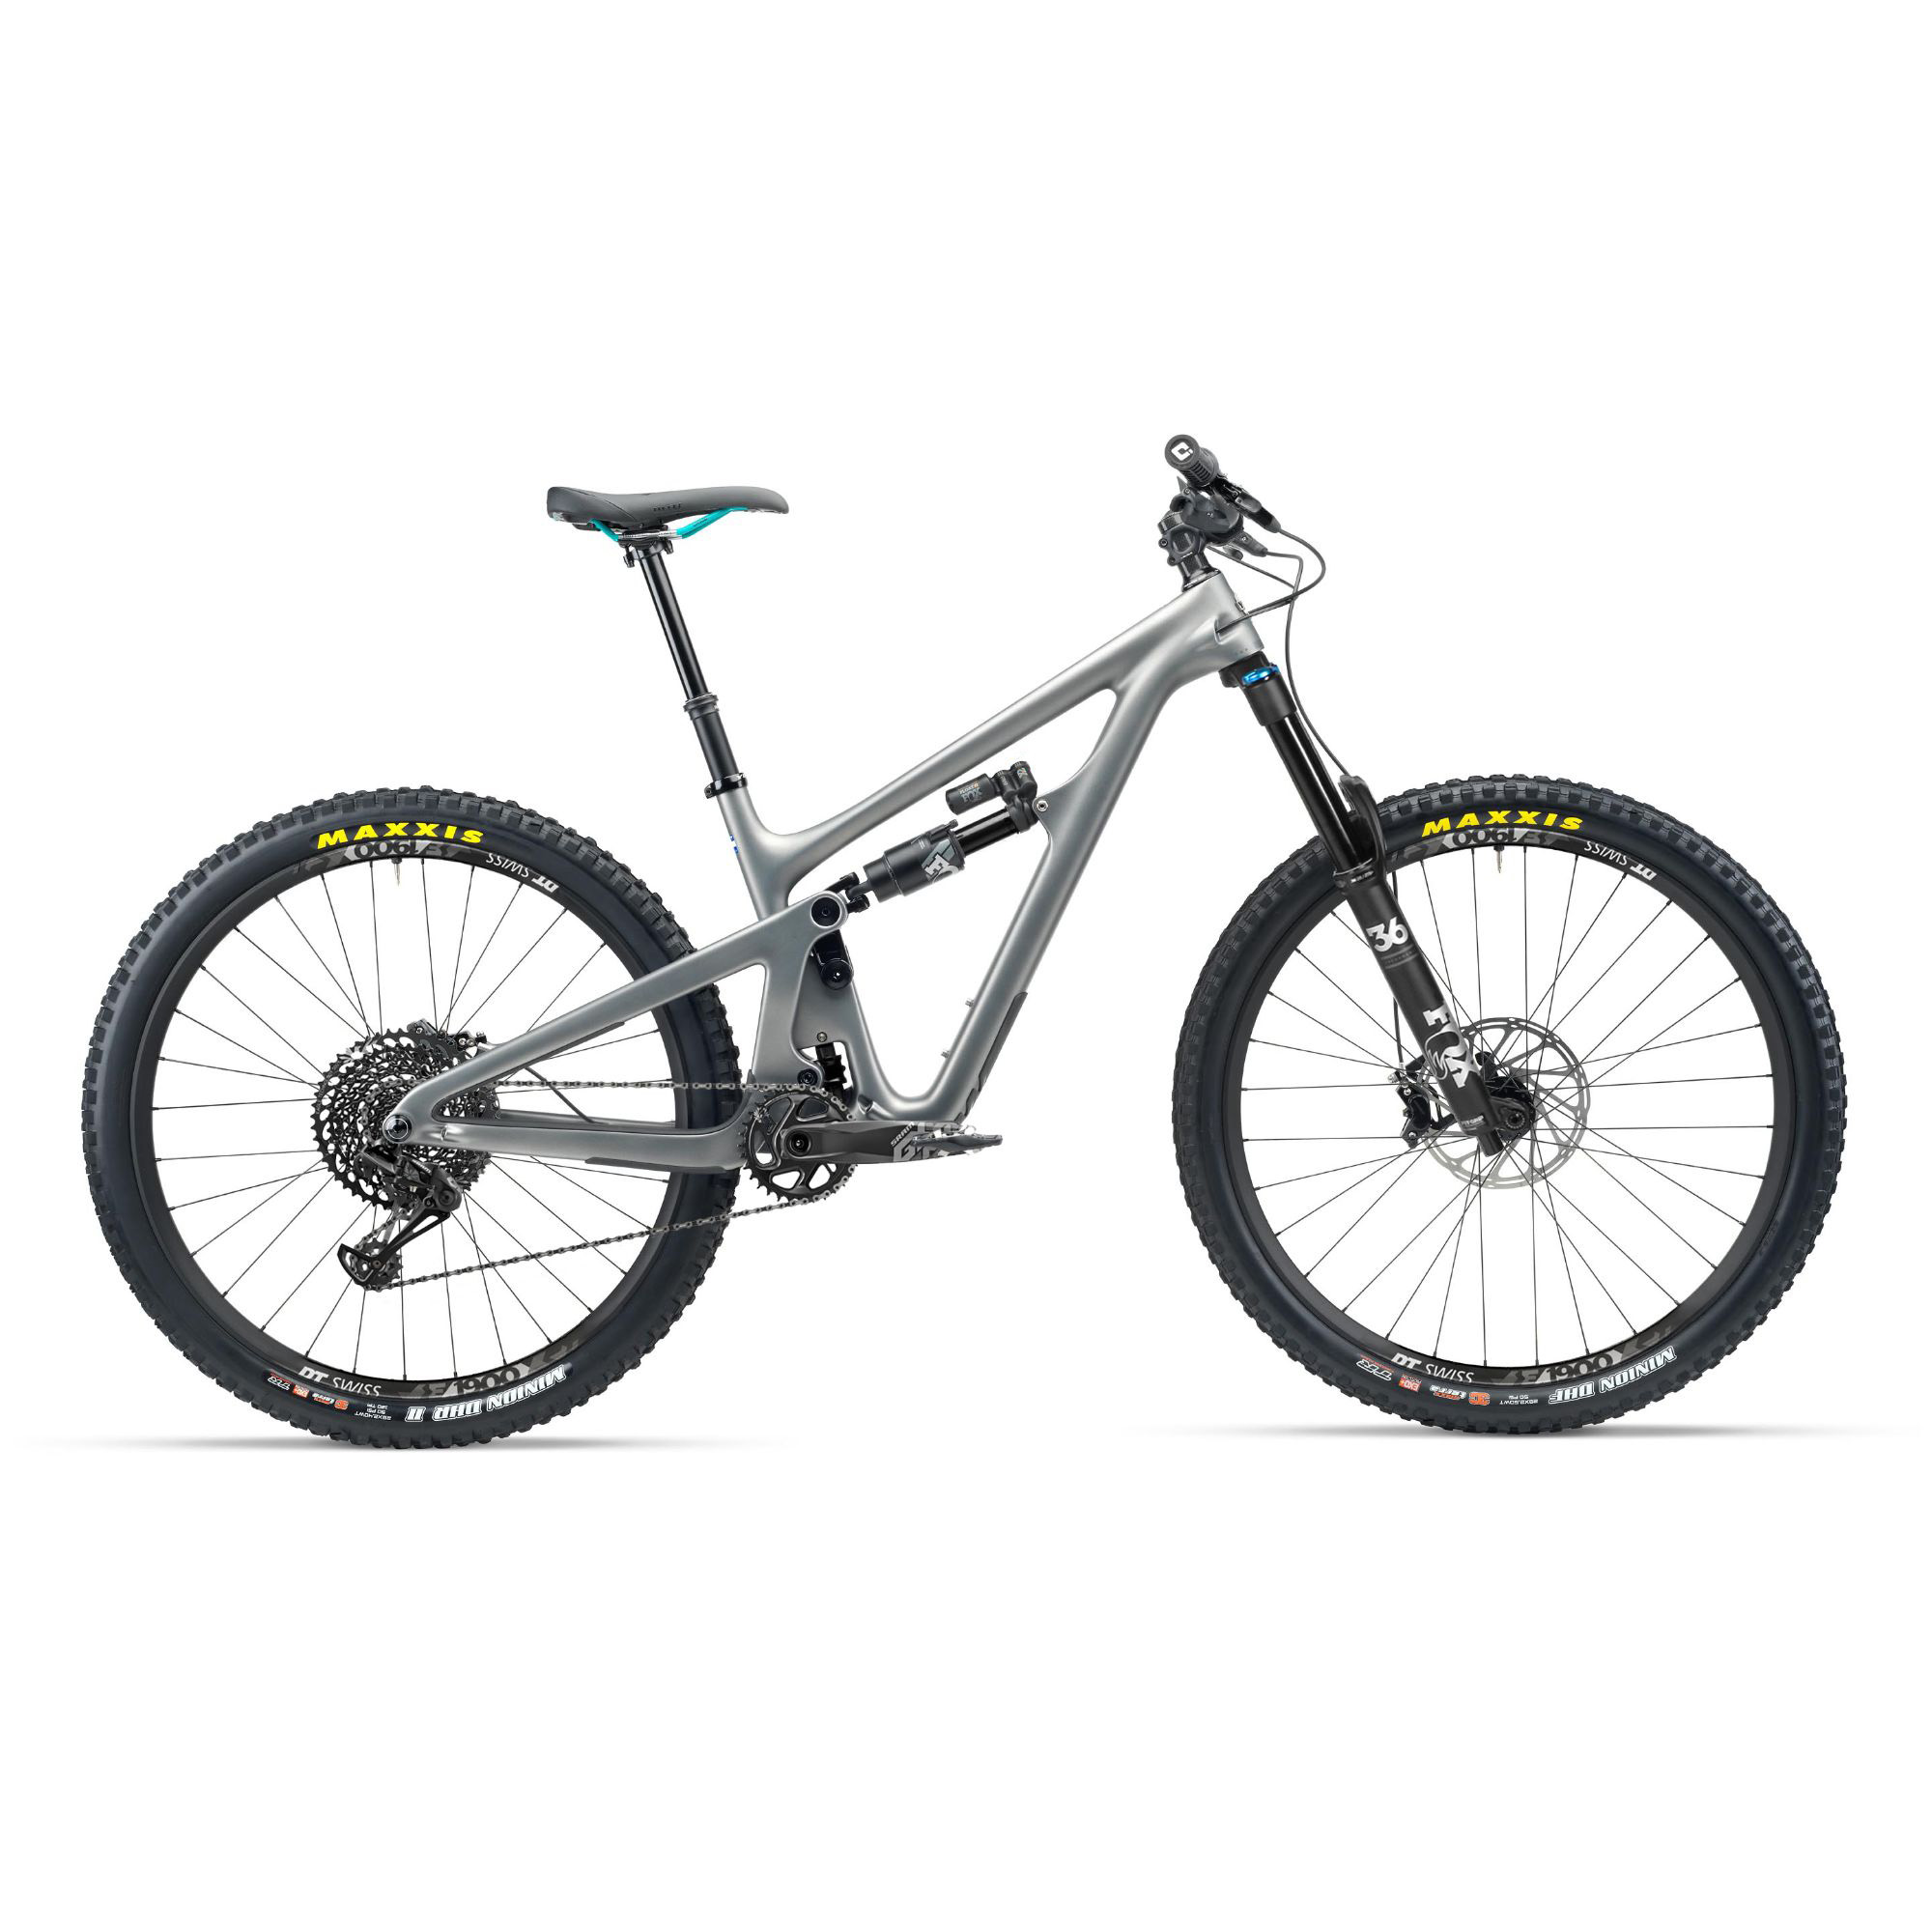 Yeti SB150 C-Series 29er Mountain Bike 2020 ANTHARACITE